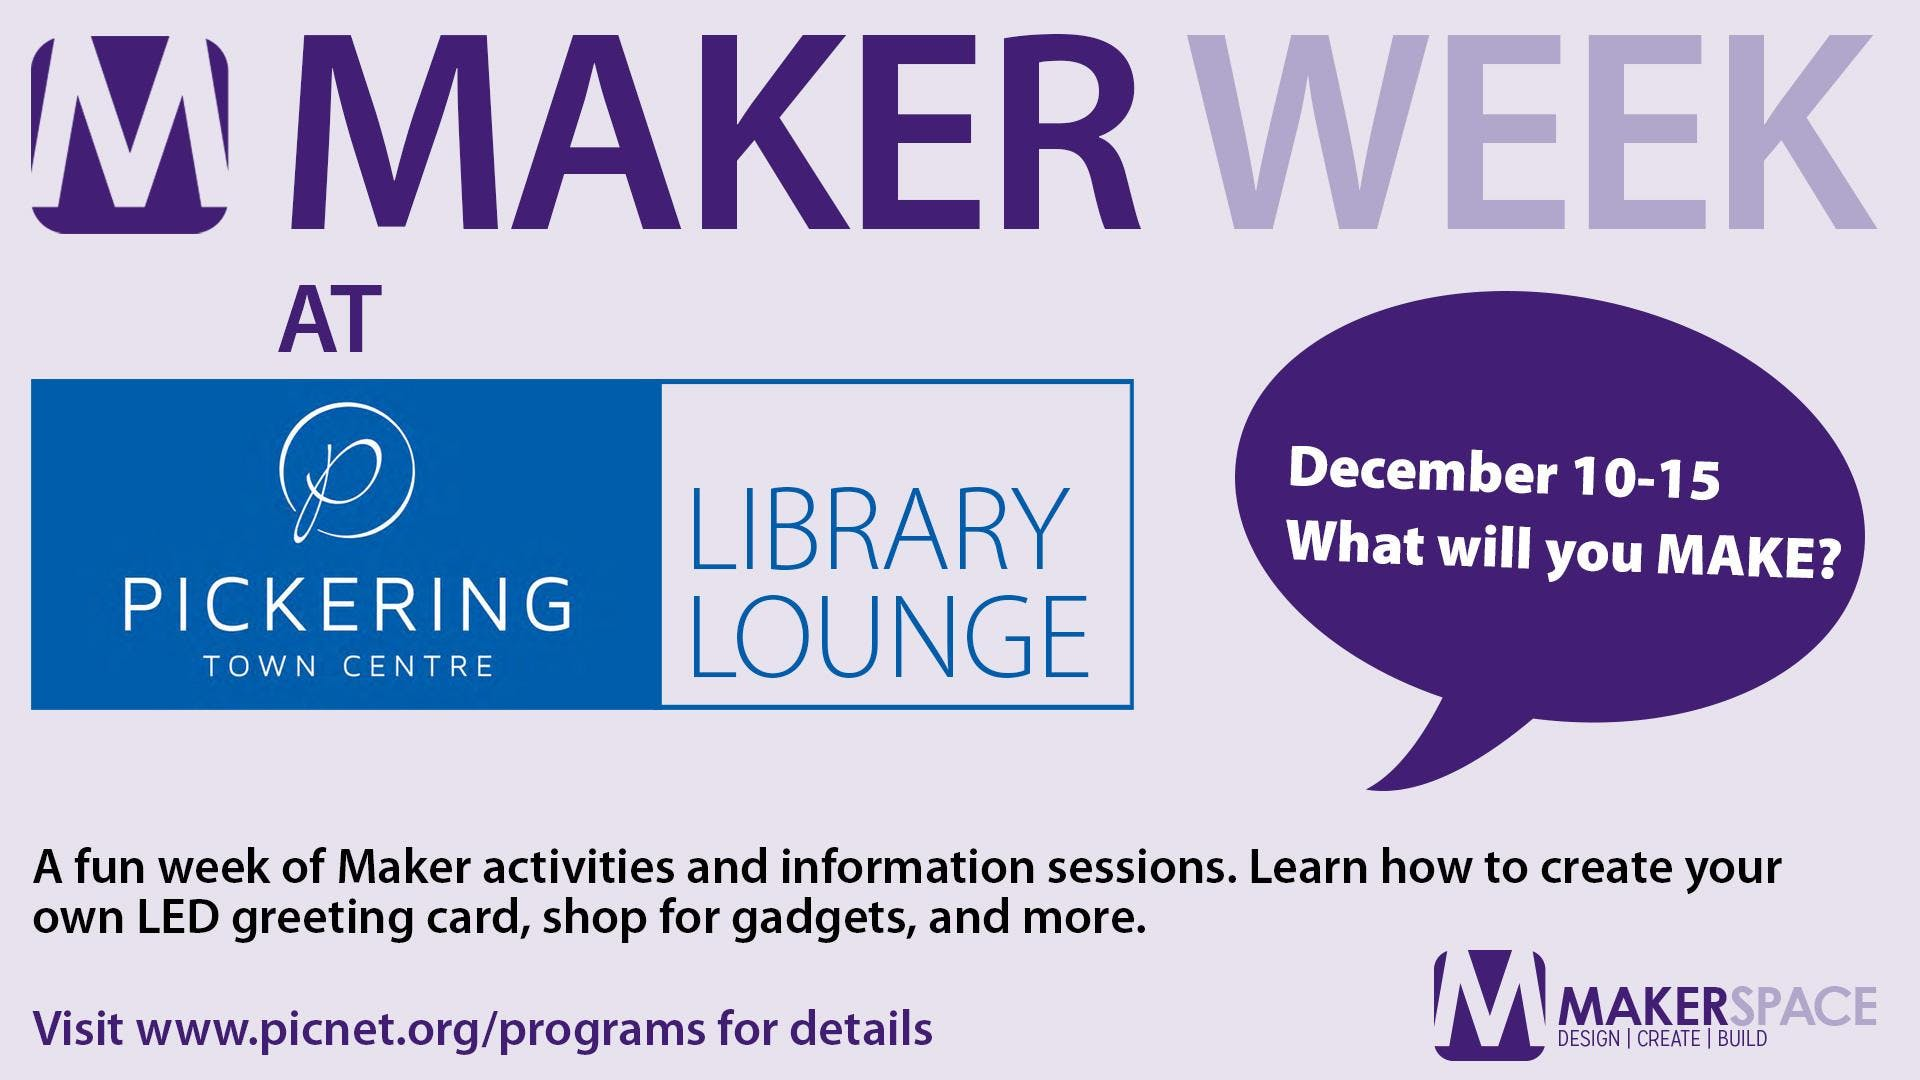 Maker Week at PTC Library Lounge